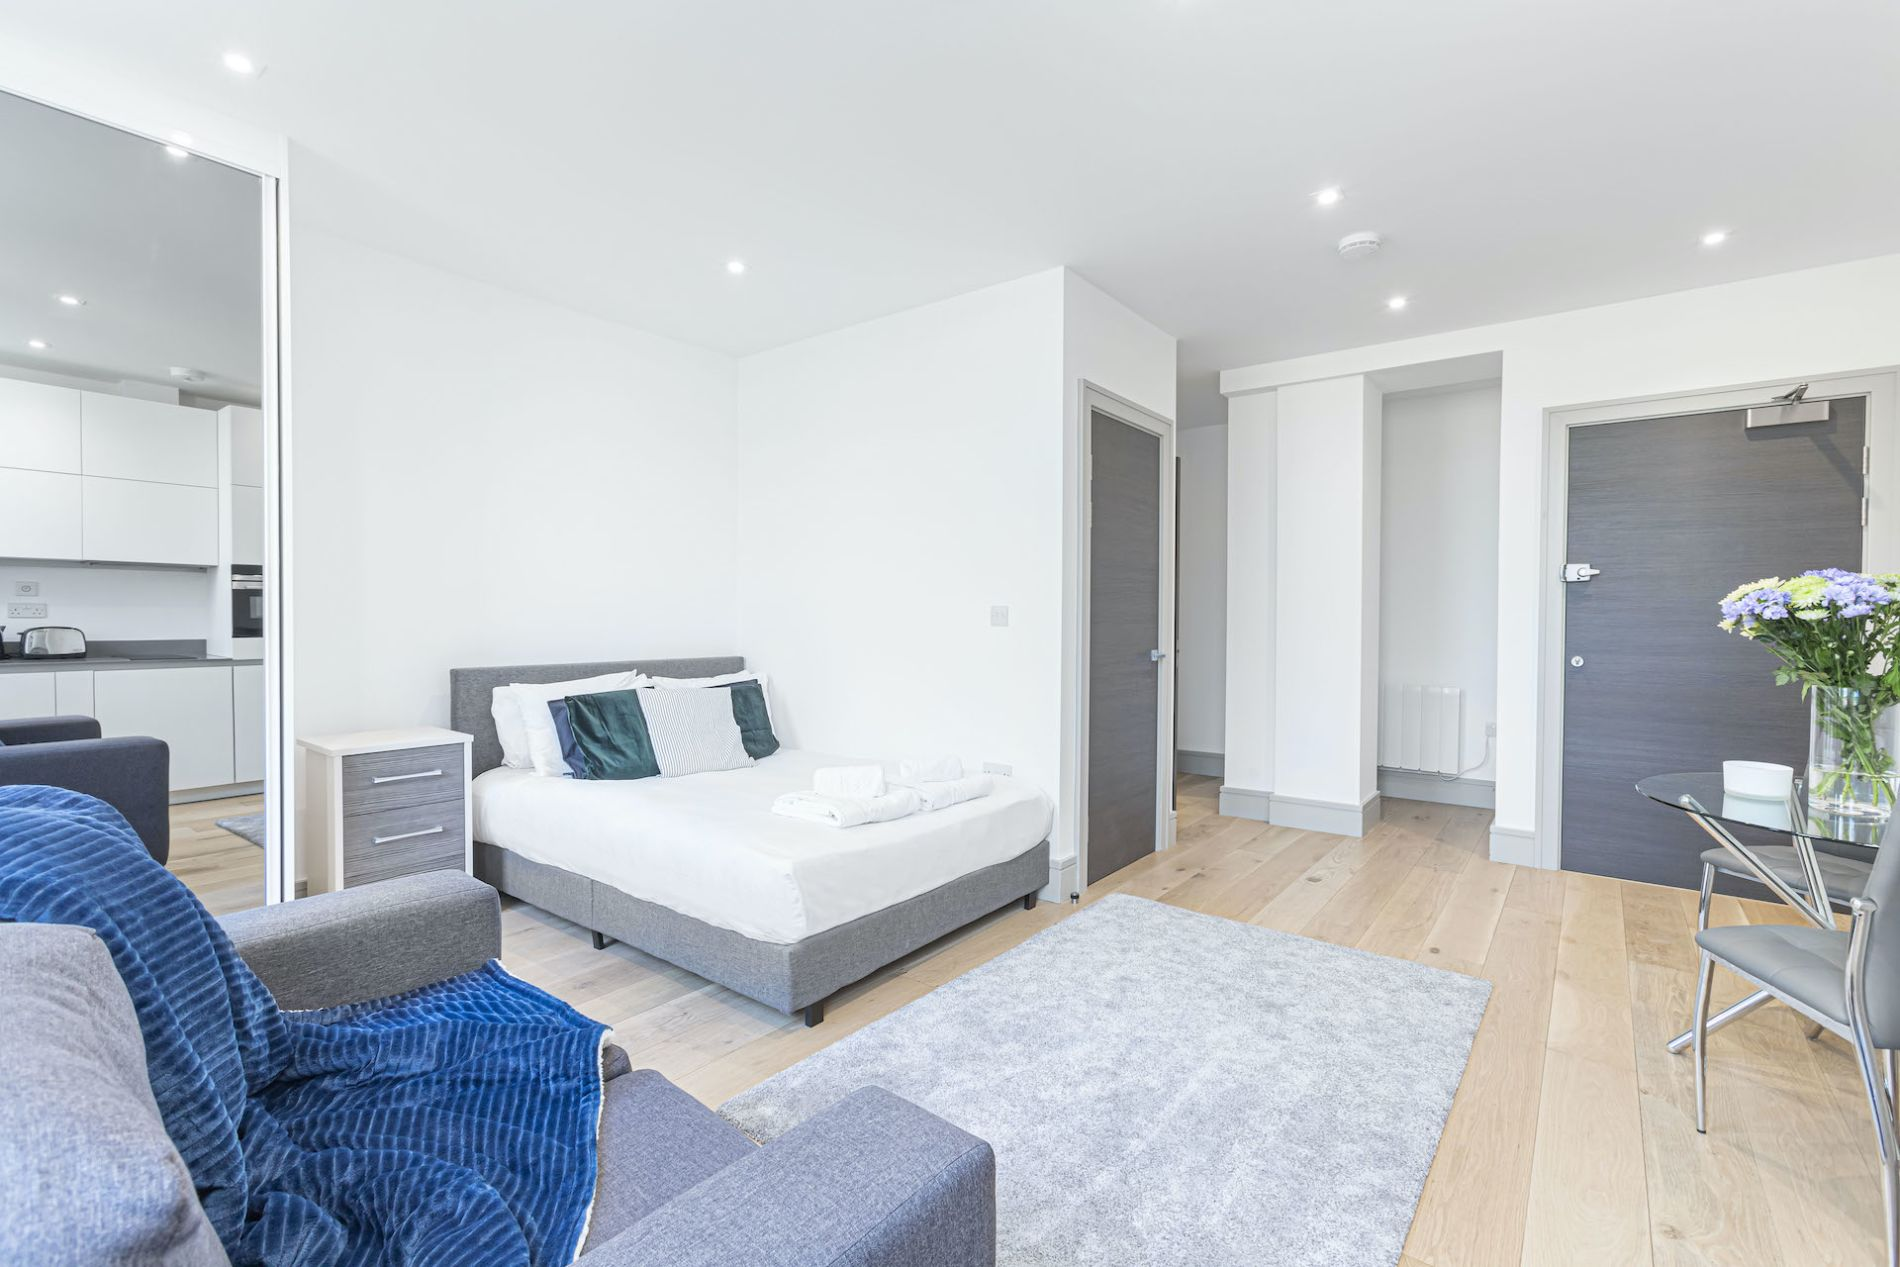 London studio serviced apartment 2